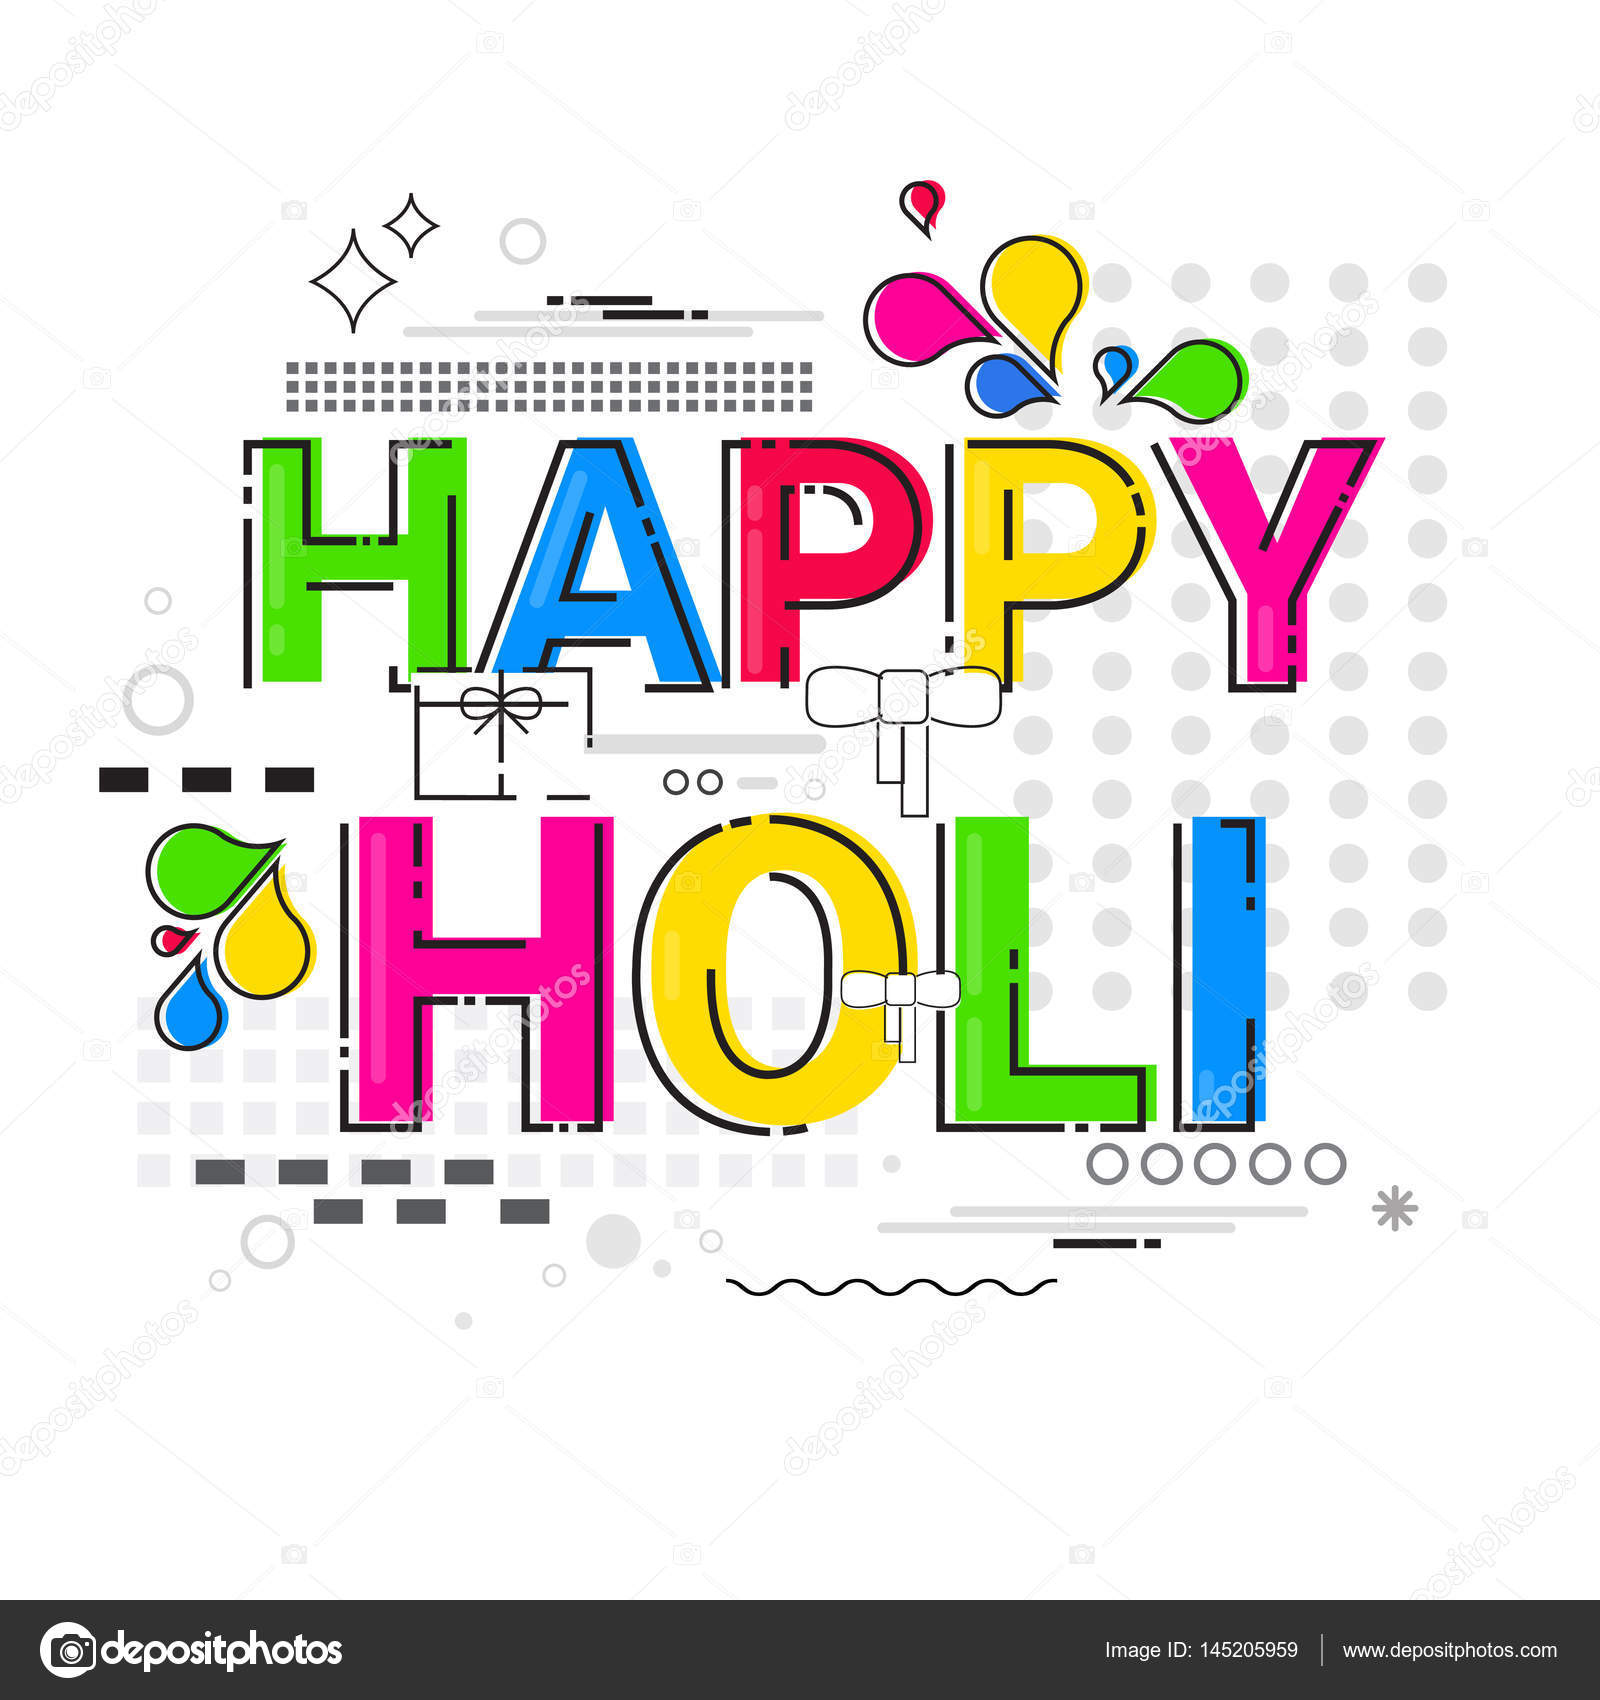 Happy holi religious india holiday traditional celebration greeting happy holi religious india holiday traditional celebration greeting card stock vector m4hsunfo